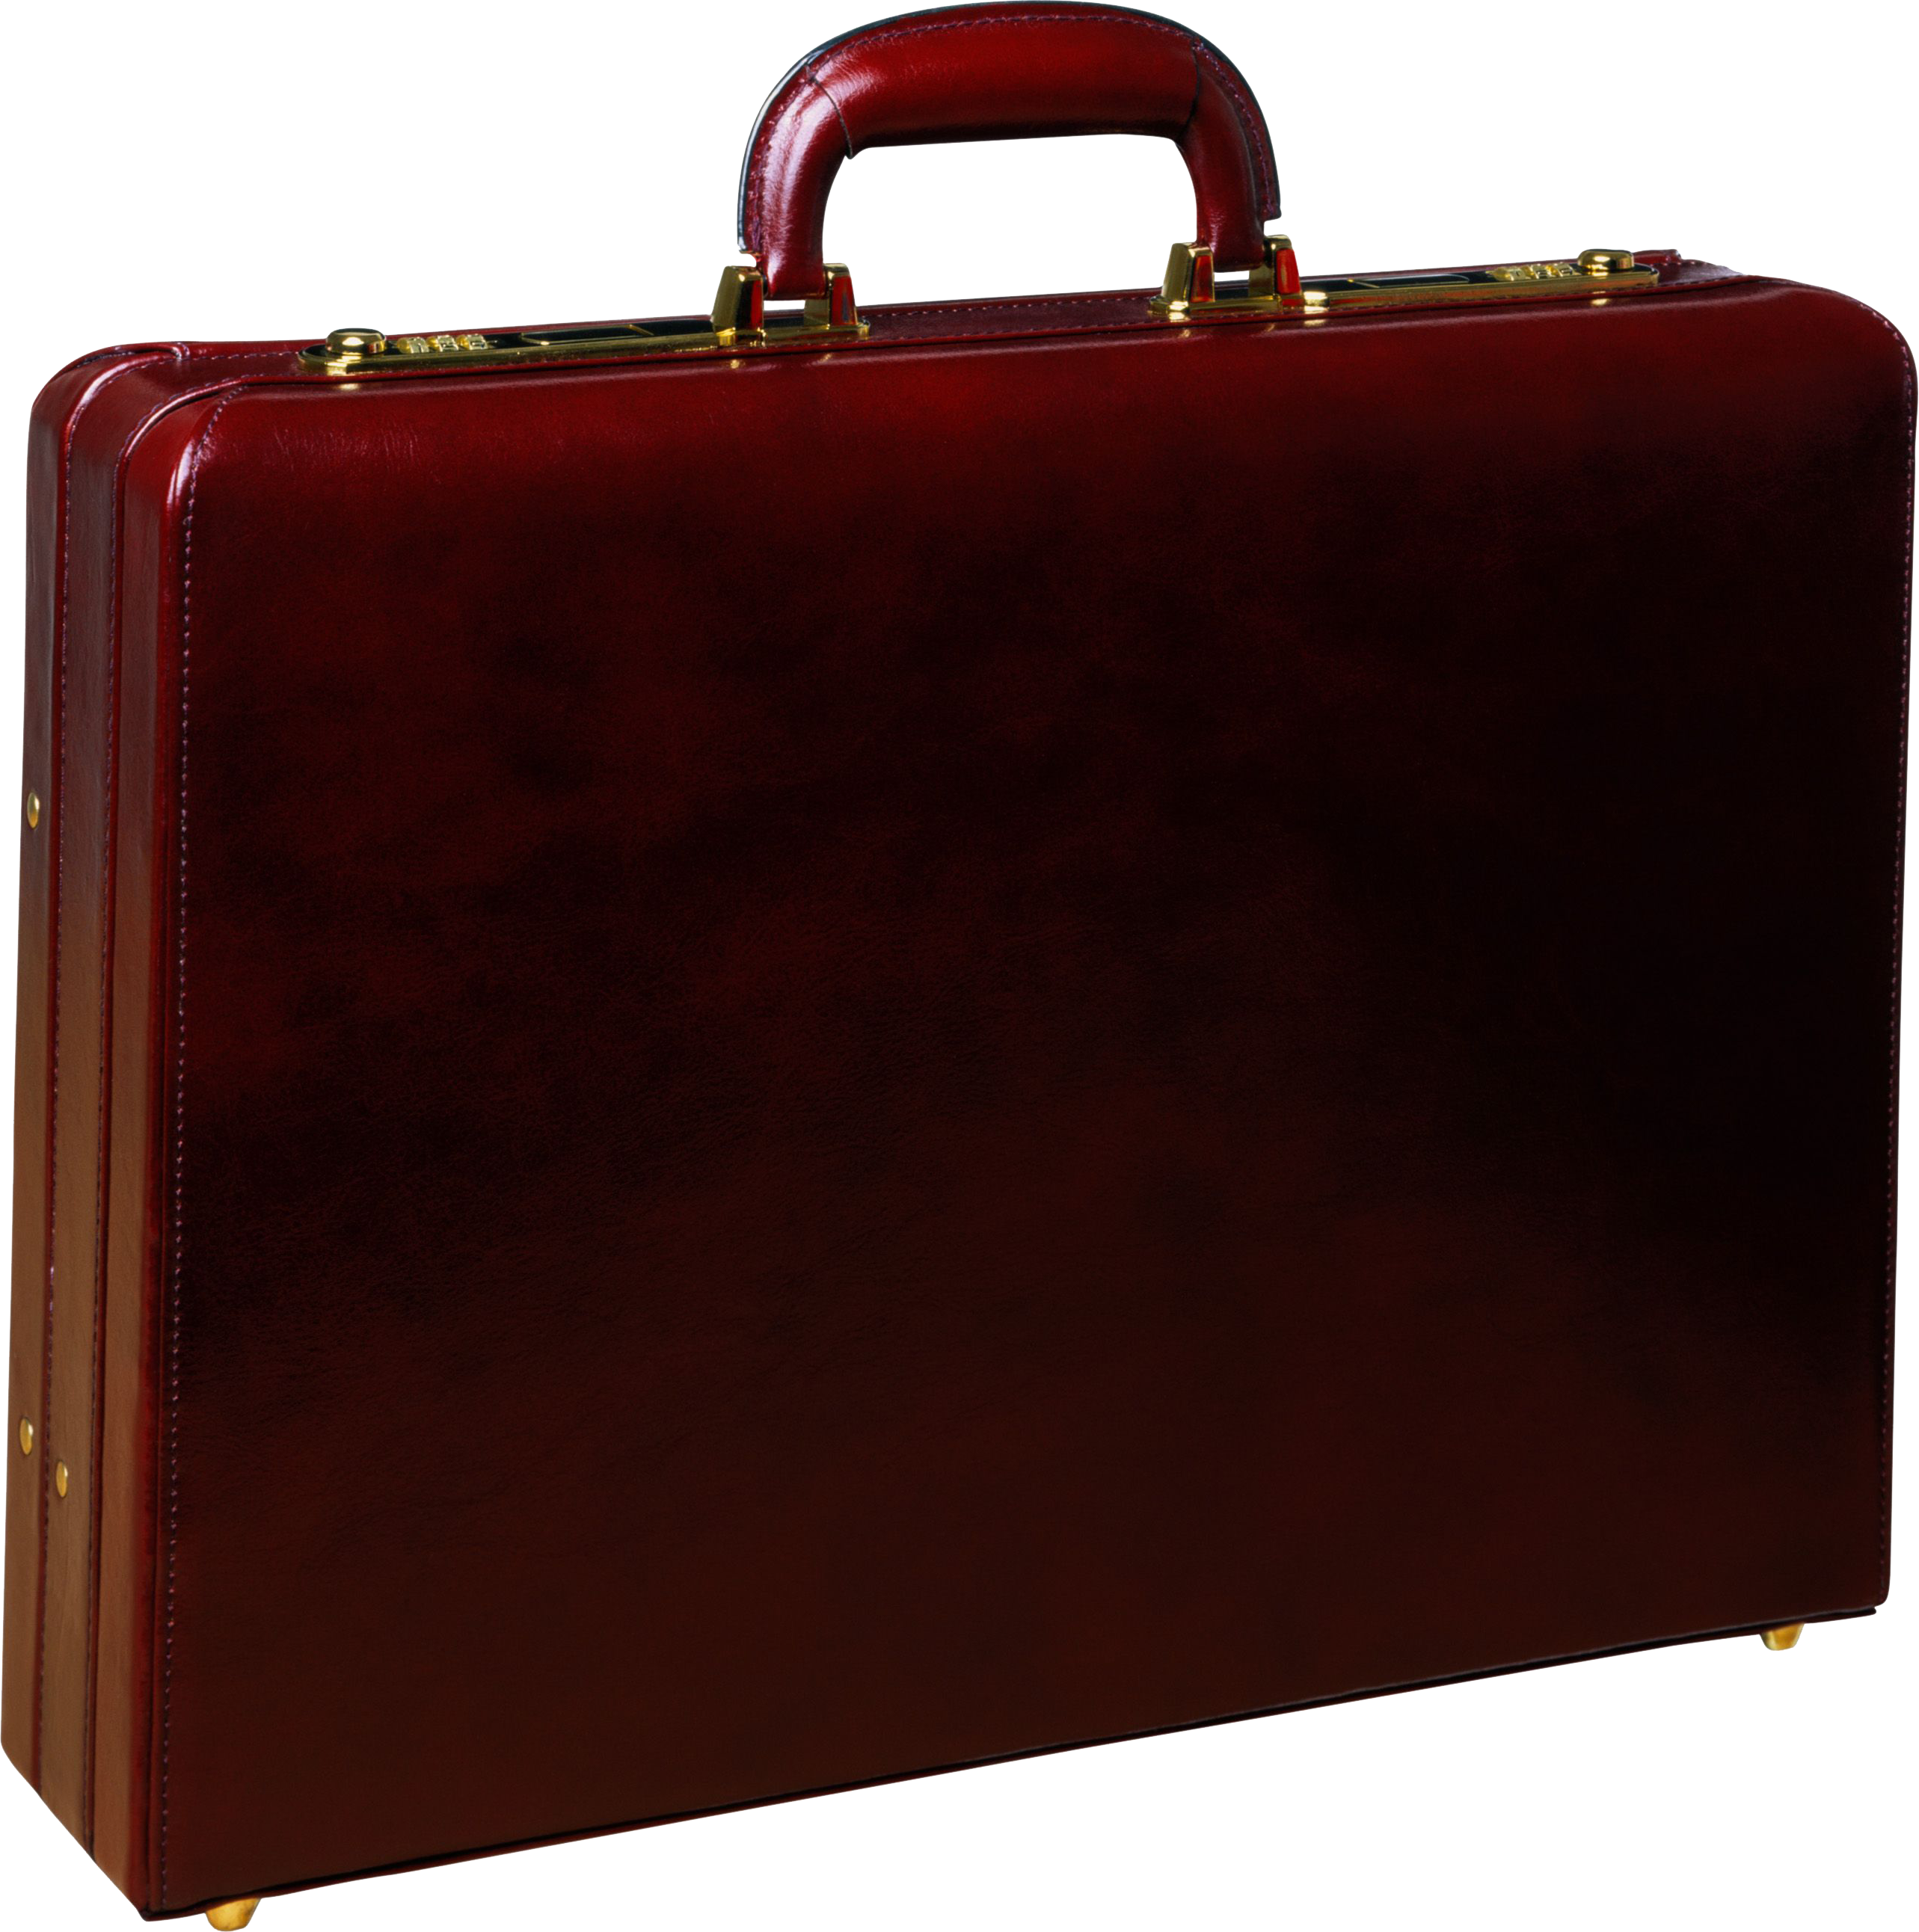 Suitcase PNG Image